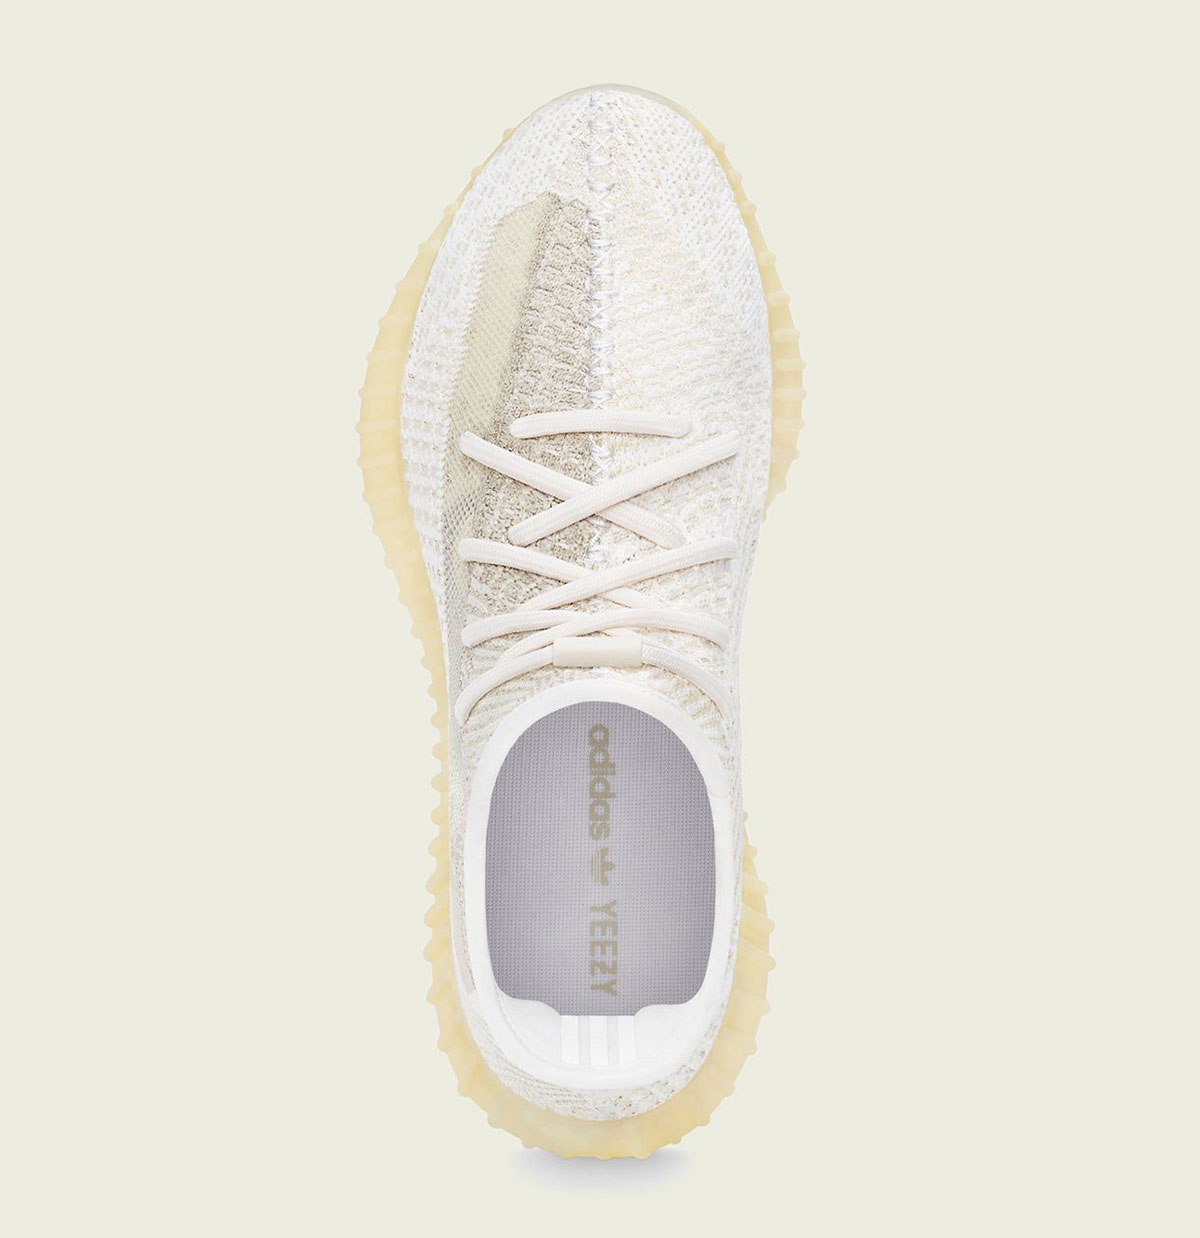 yeezy-boost-350-v2-natural-release-date-price-3